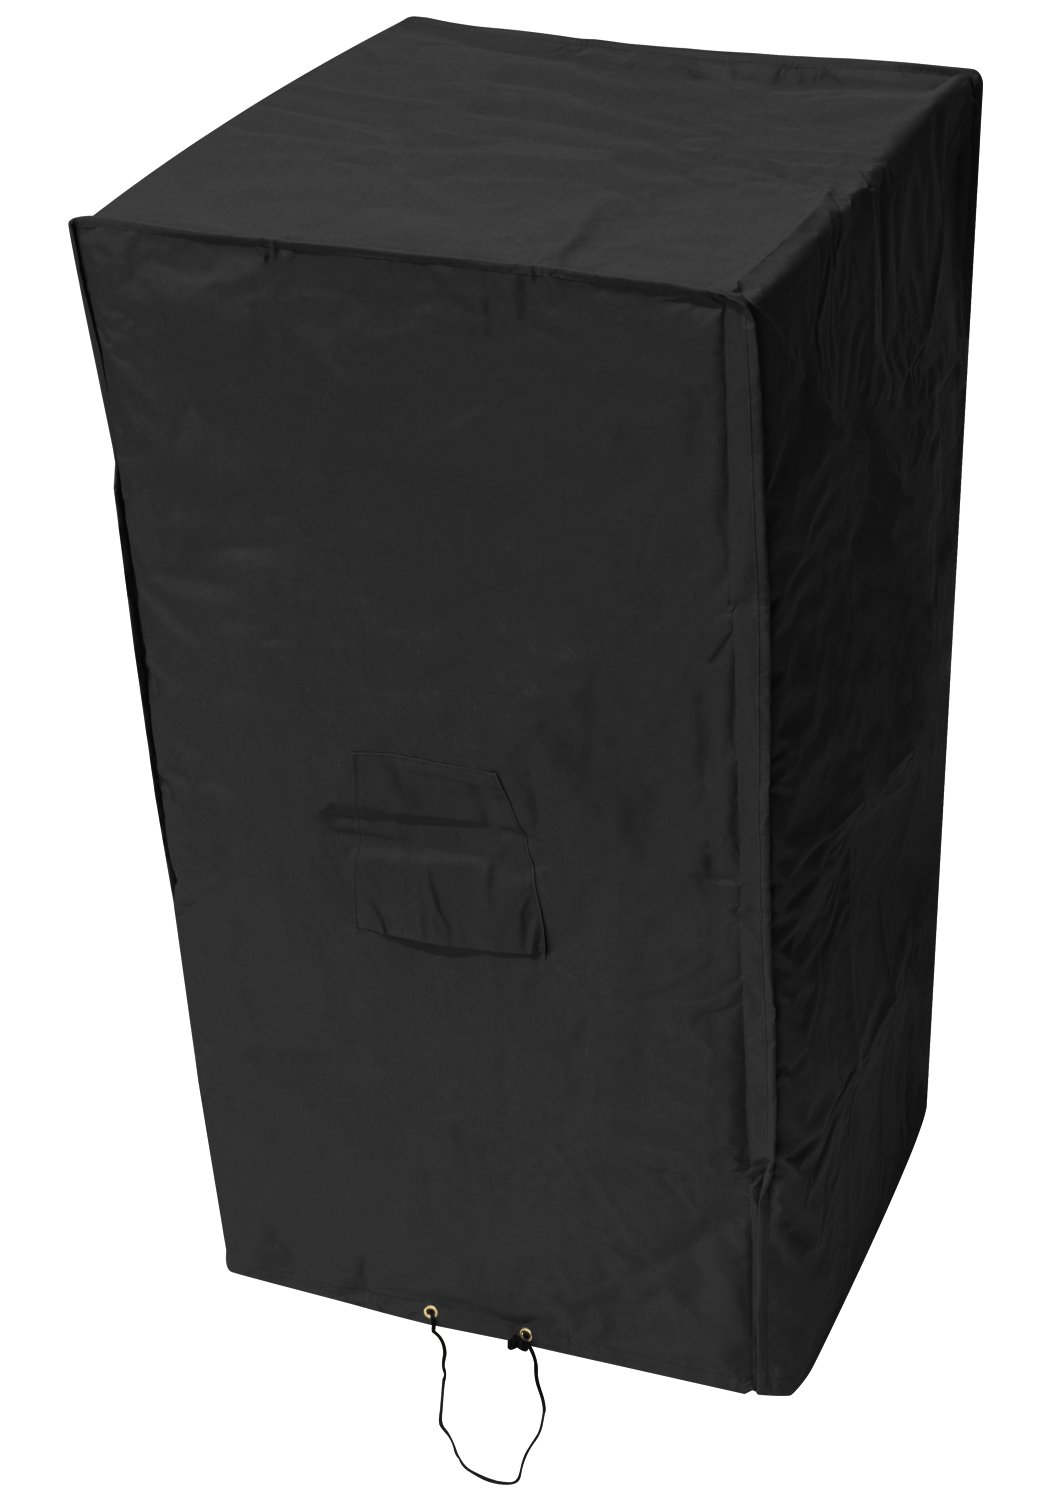 Oxbridge Black Outdoor Garden Stacking Chair Cover 0.66m x 0.66m x 1.22m/2.2ft x 2.2ft x 4ft 5 YEAR GUARANTEE